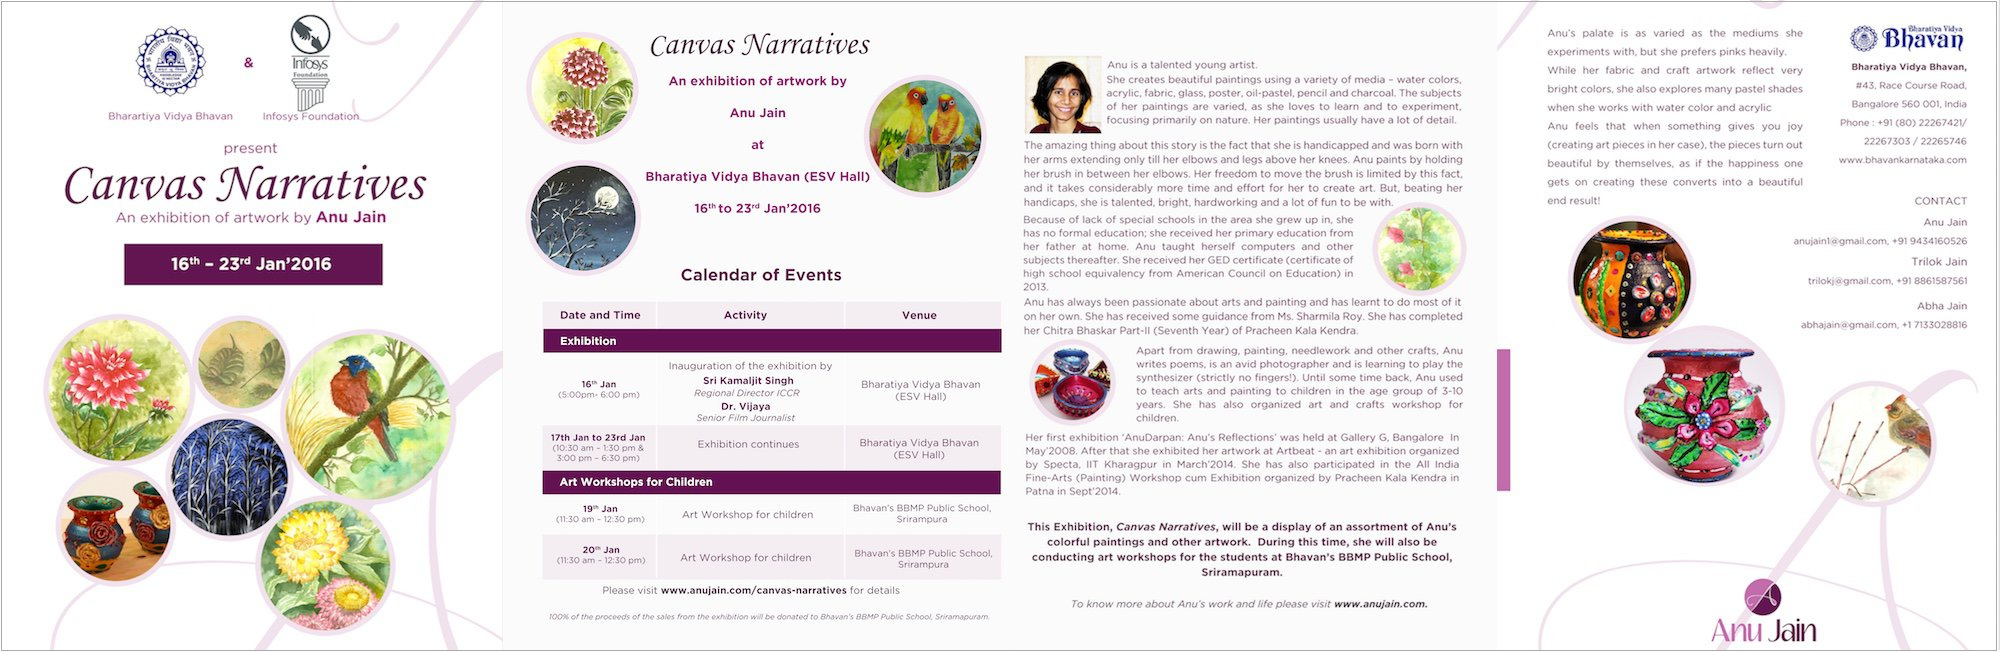 Paper Invitation - Canvas Narratives'2016